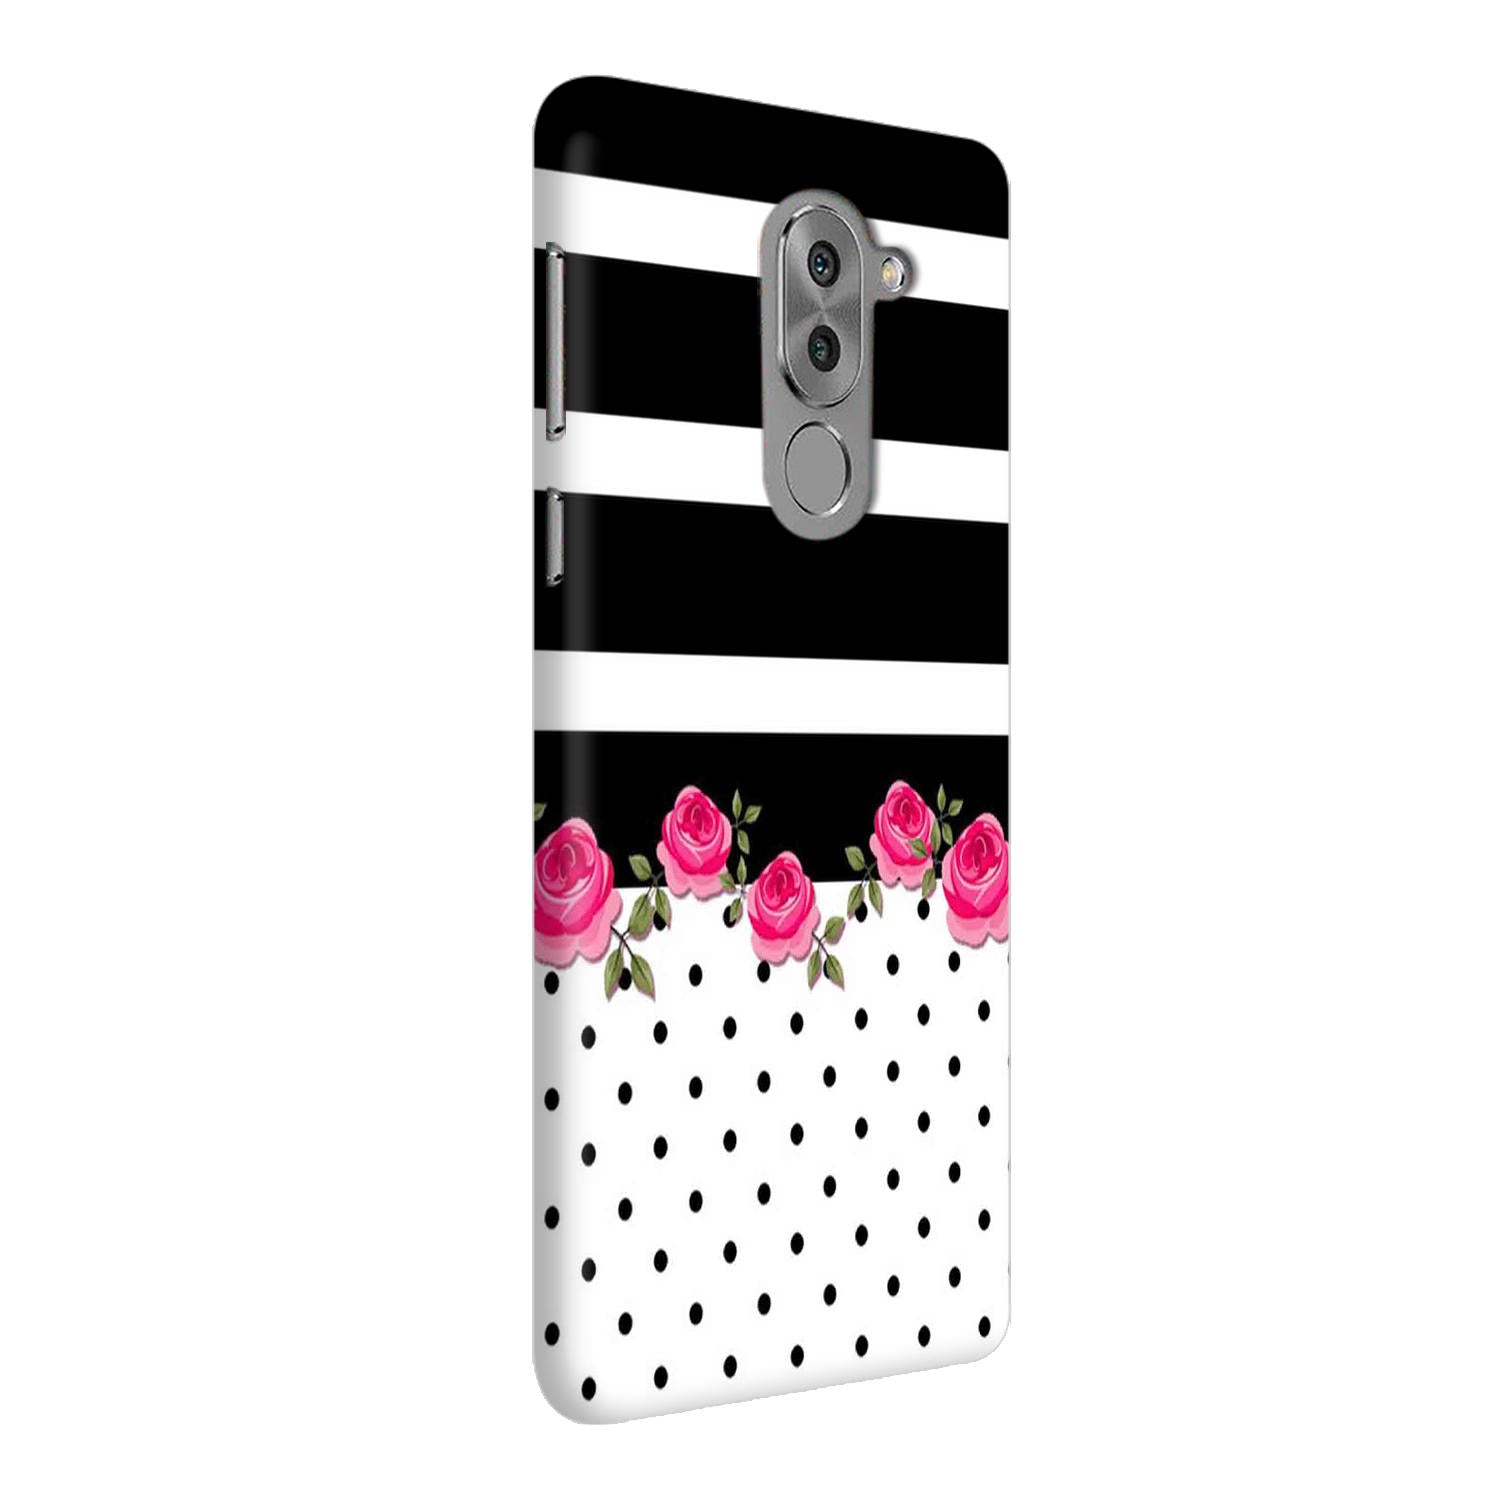 Rose Polka Stripes Honor 6X Mobile Cover Case